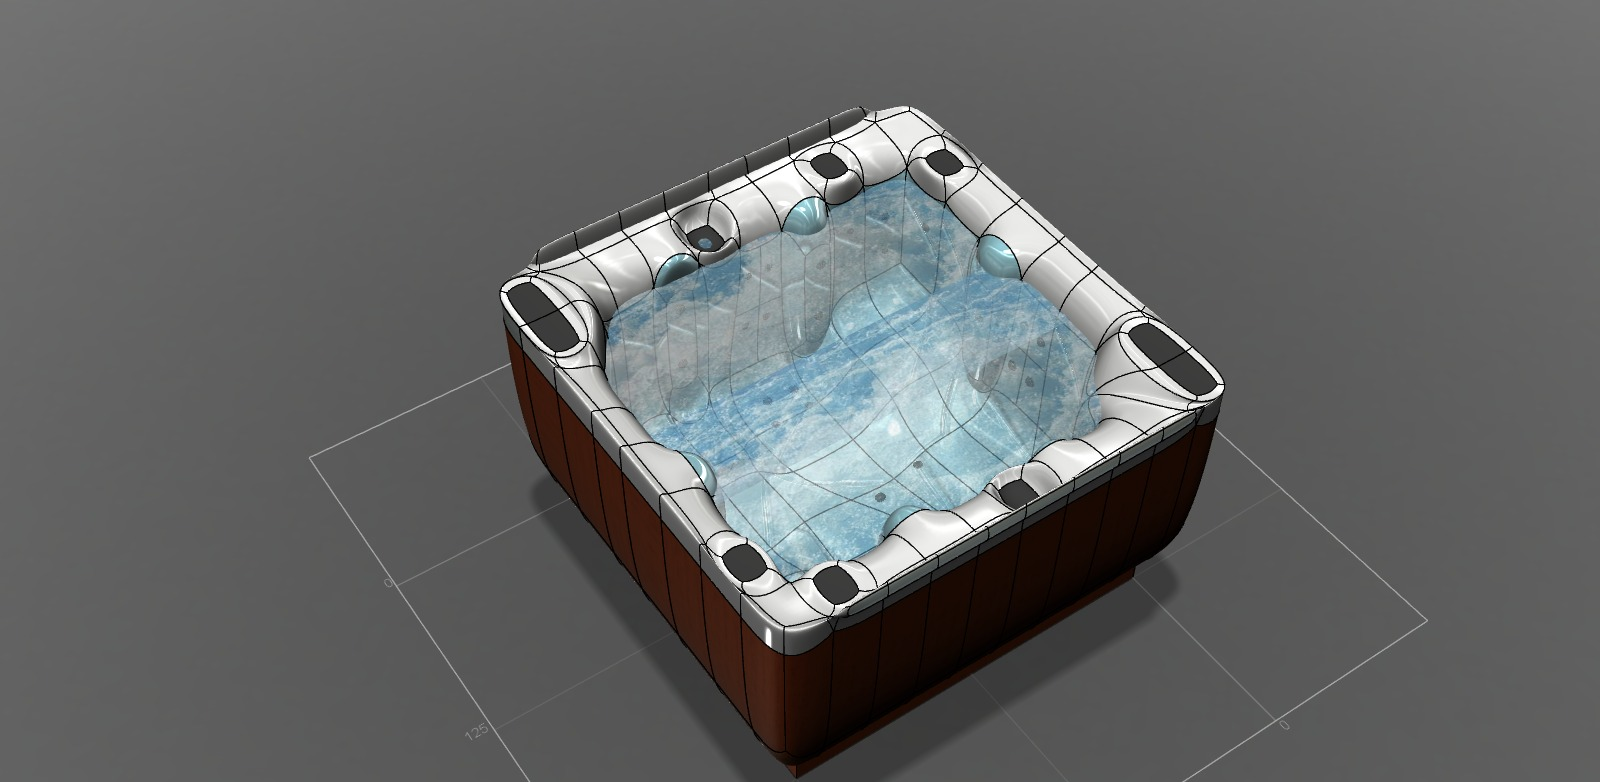 Spa/Hot Tub|Autodesk Online Gallery